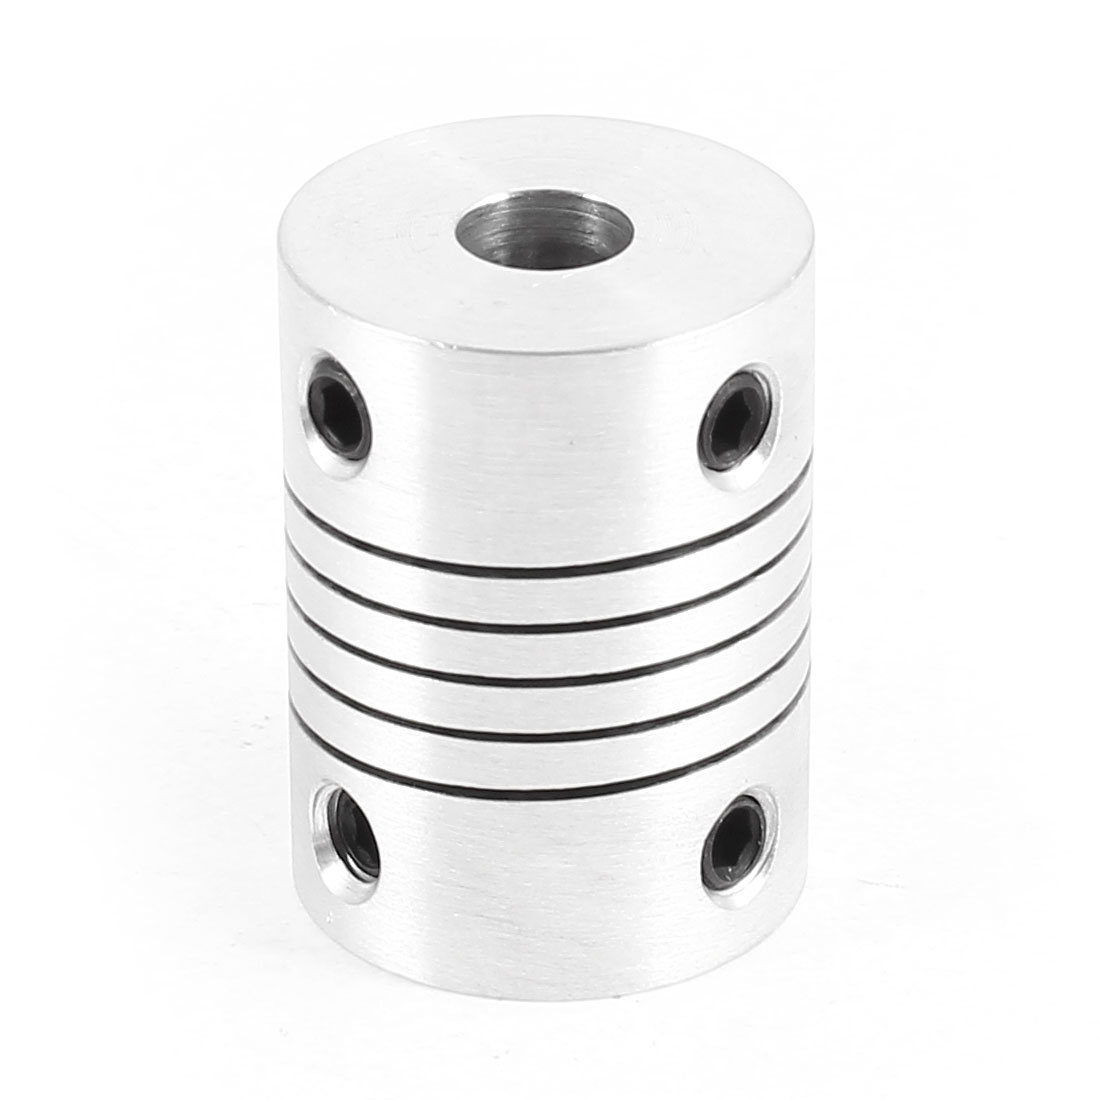 CNC 6mm Aluminum Alloy Electric Motor Shaft Coupler Coupling Joiner Silver Tone